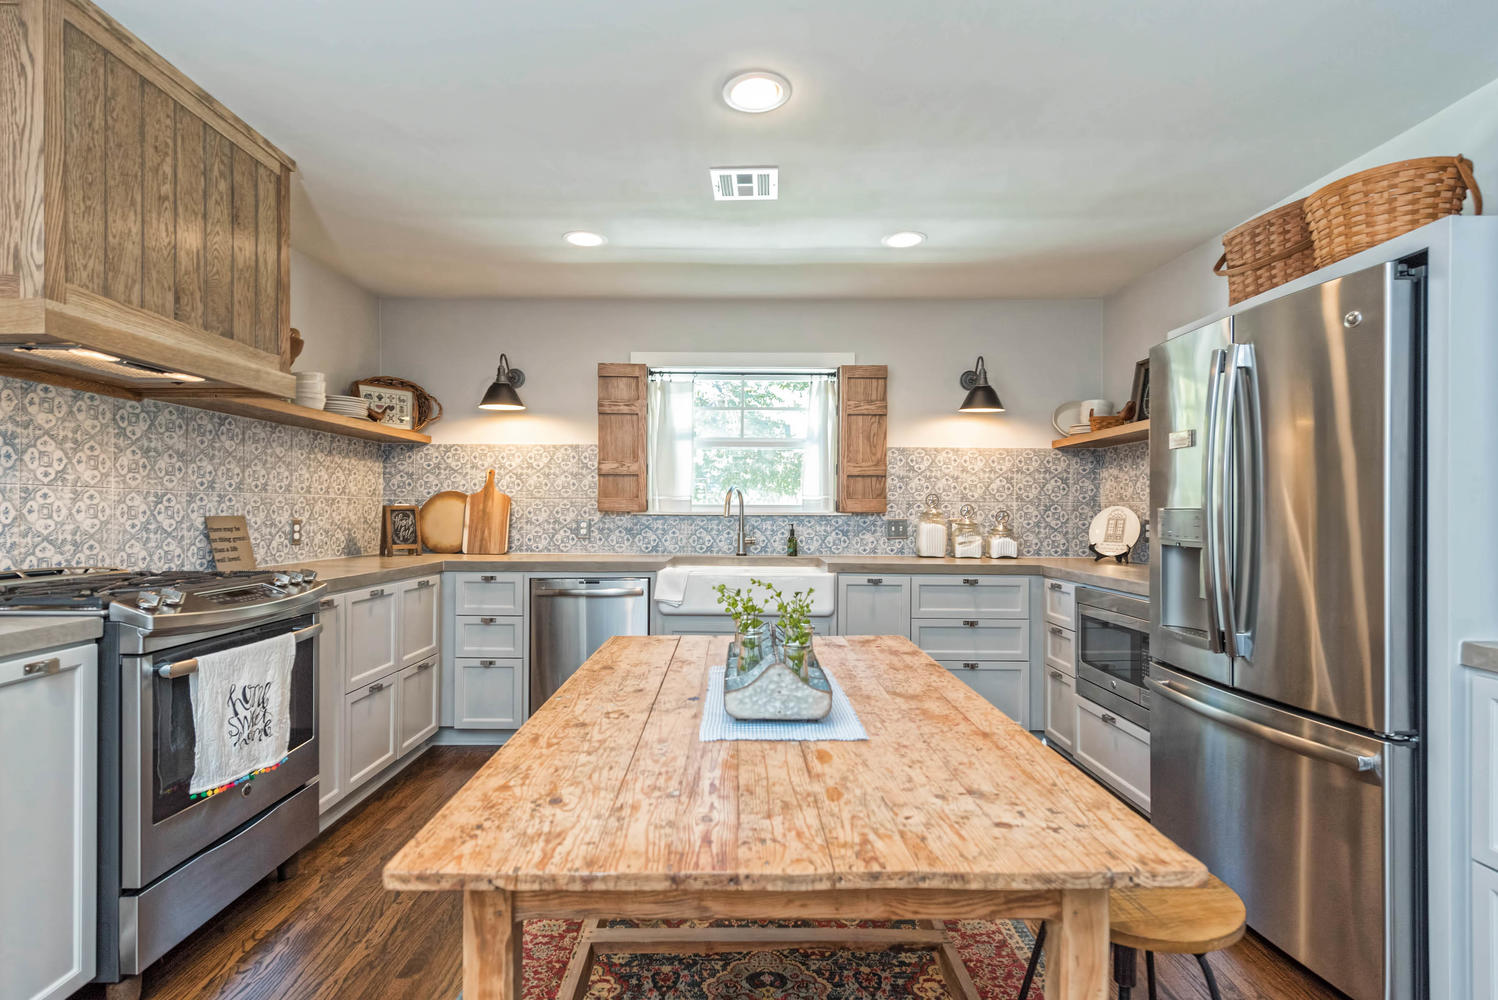 Fixer Uper: This Adorable Cottage From Fixer Upper Is On The Market